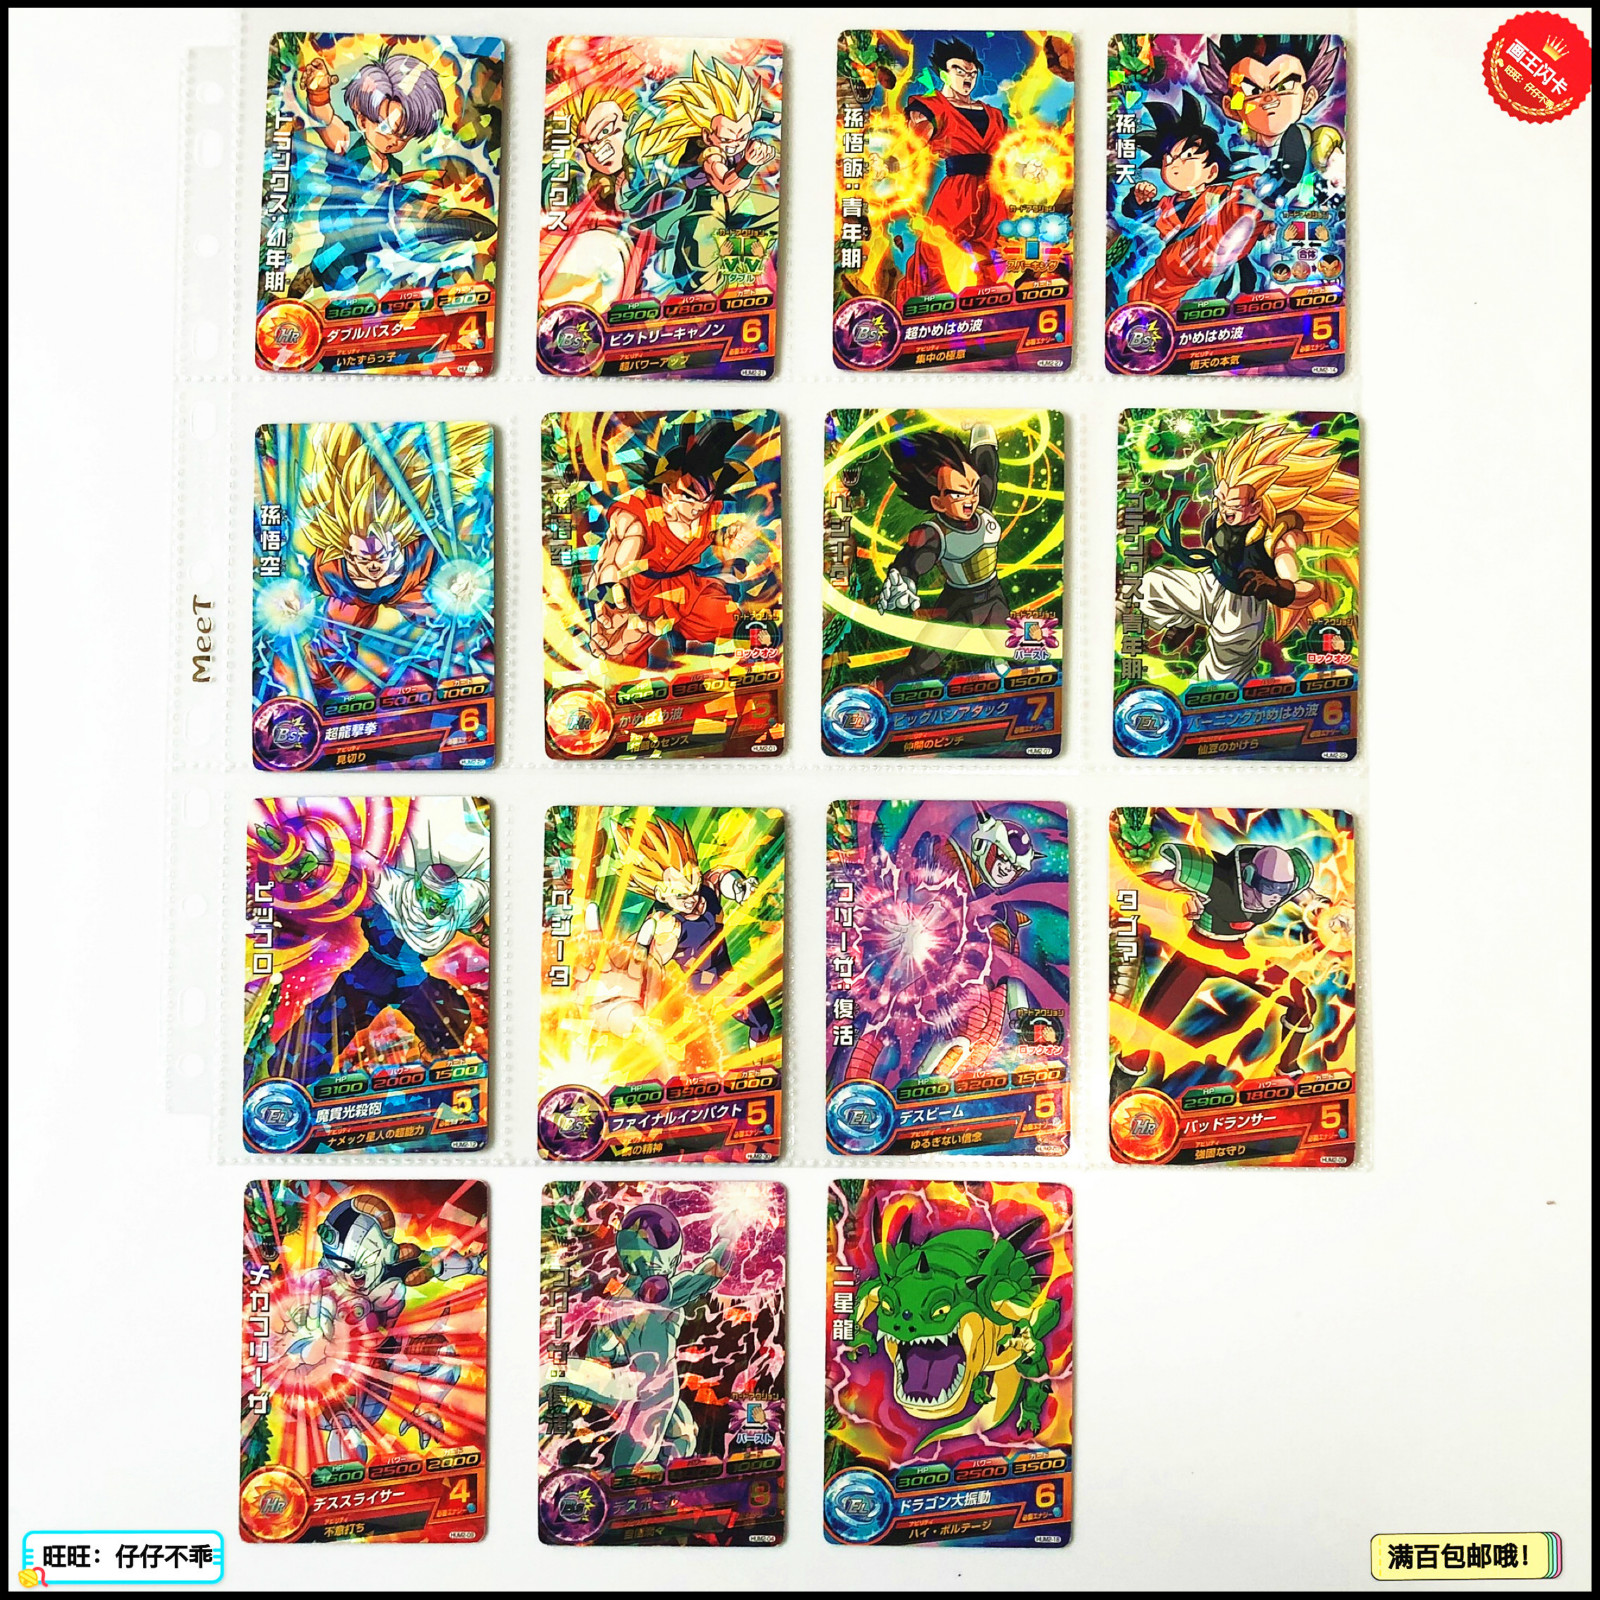 Japan Original Dragon Ball Hero Card HUM2 Goku Toys Hobbies Collectibles Game Collection Anime Cards